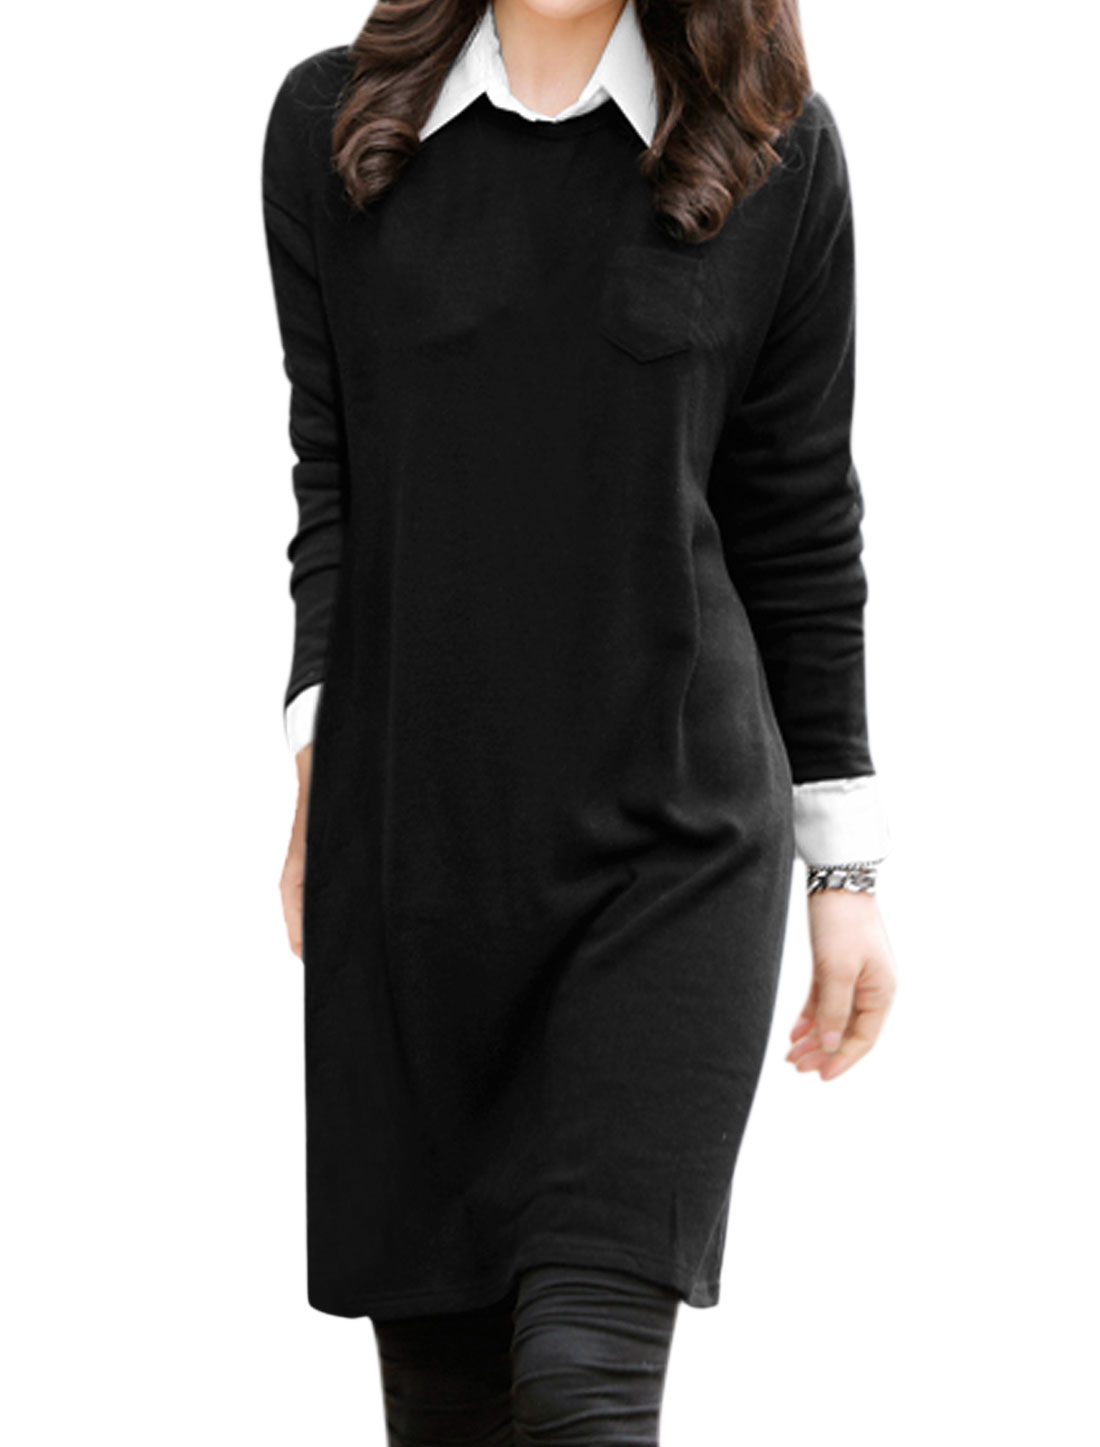 Ladies Long Sleeves Layered Panel Design Casual Tunic Dress Black M